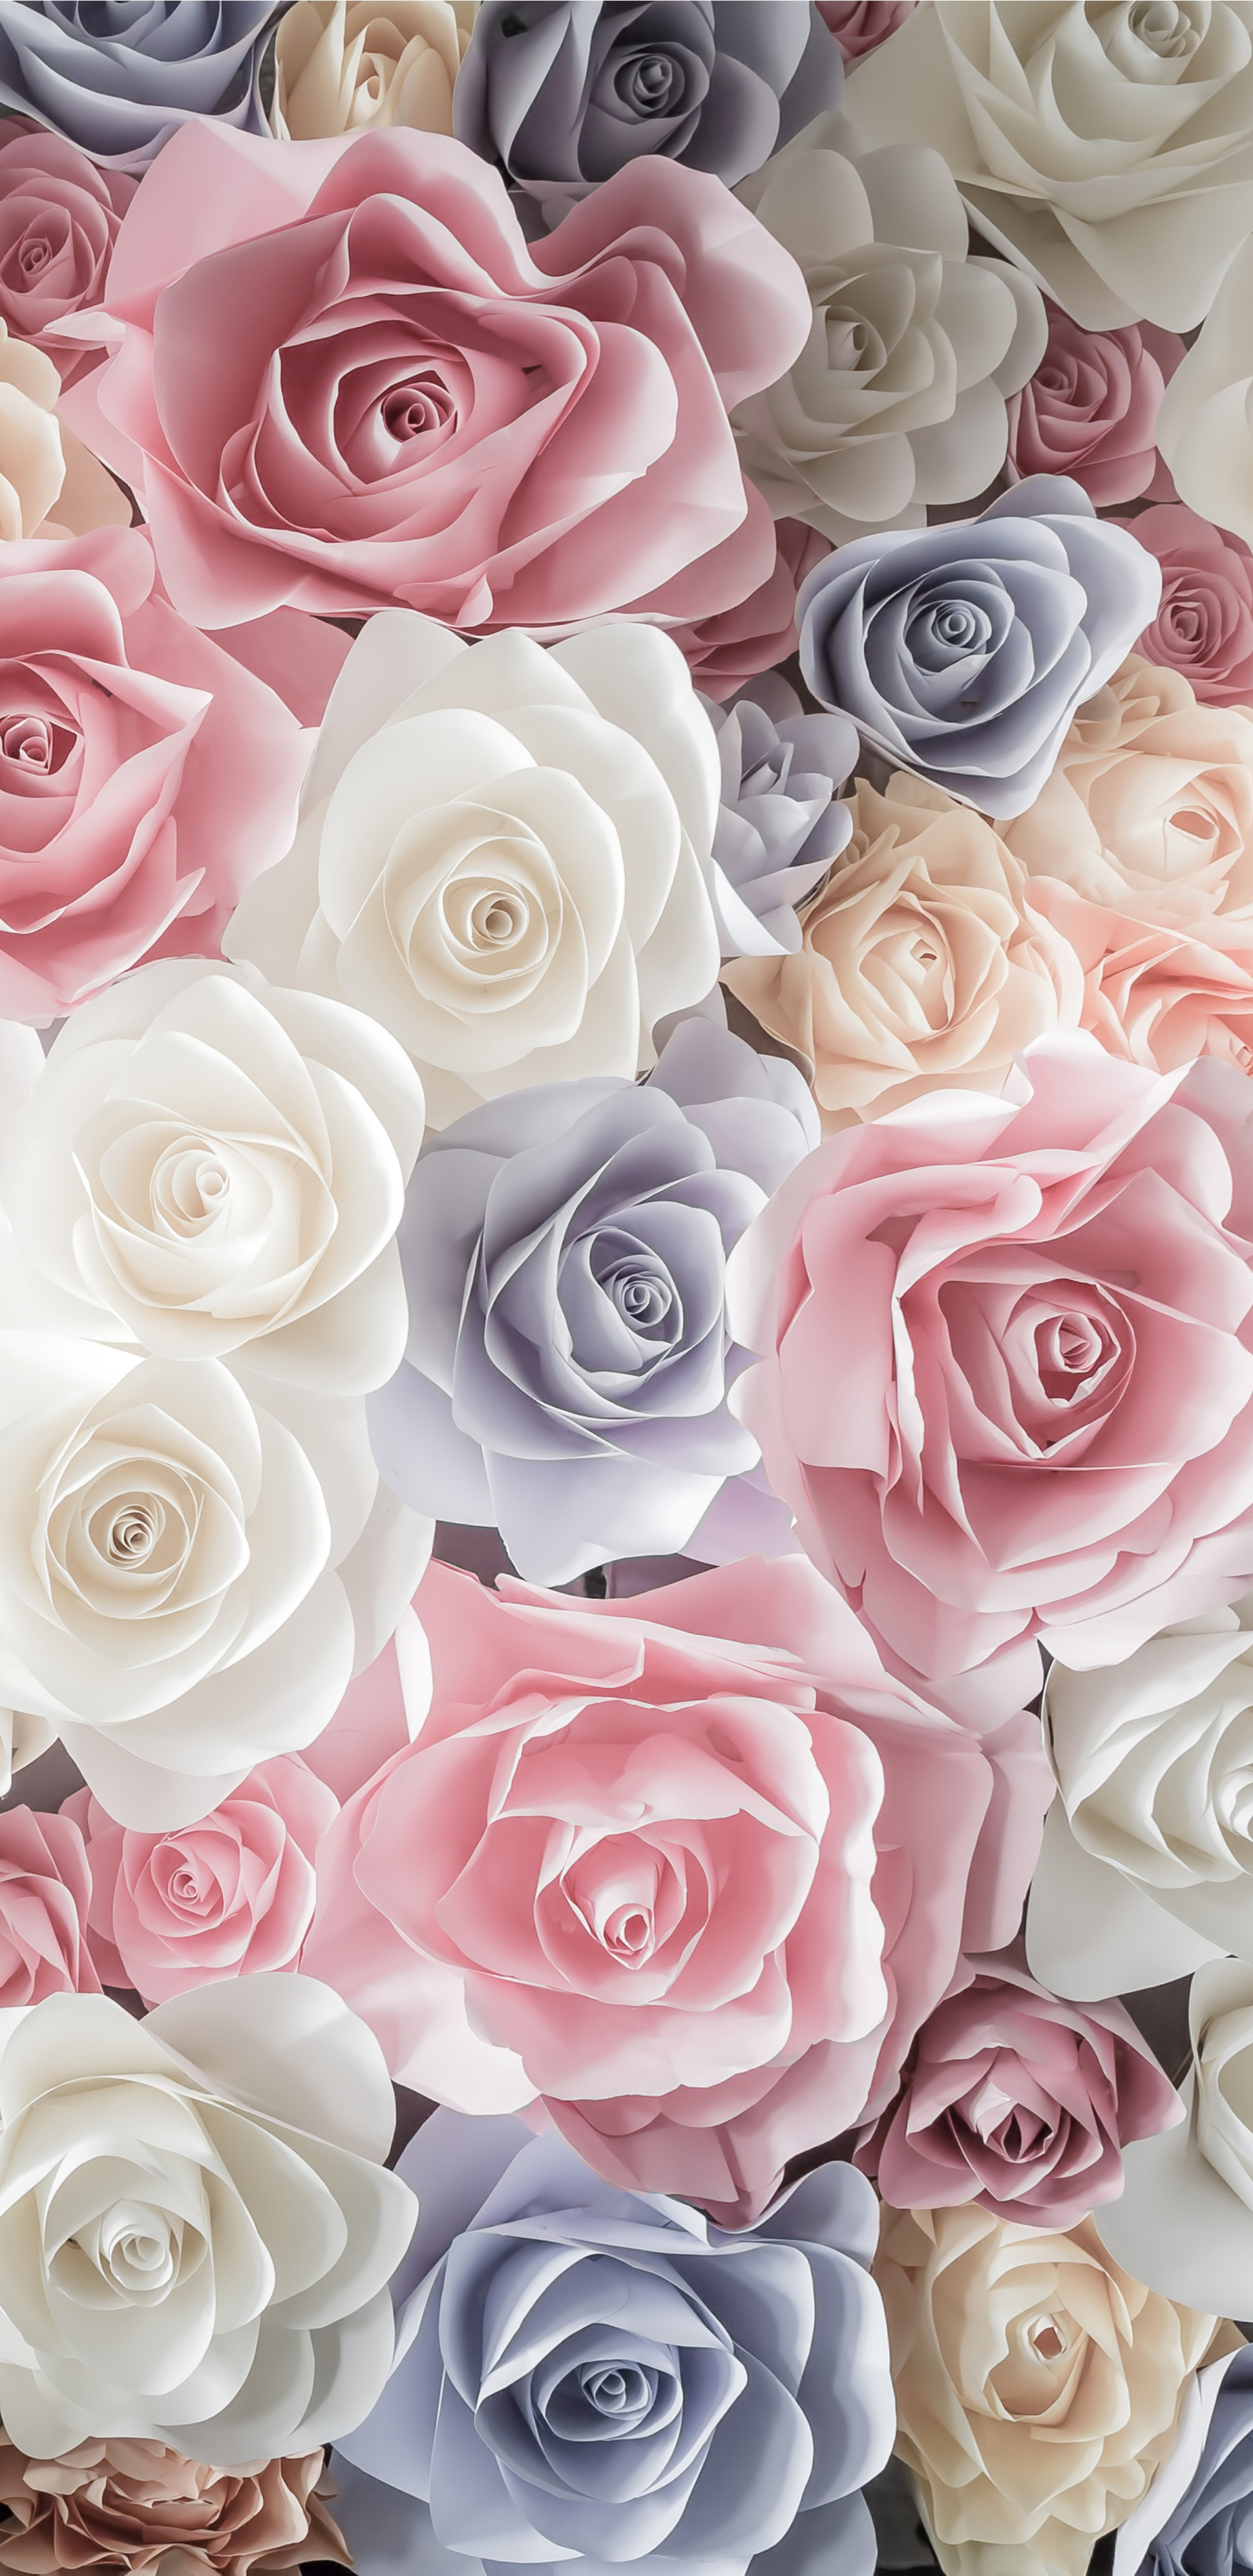 Pastel Roses Earth / Rose (1440x2960) Mobile Wallpaper